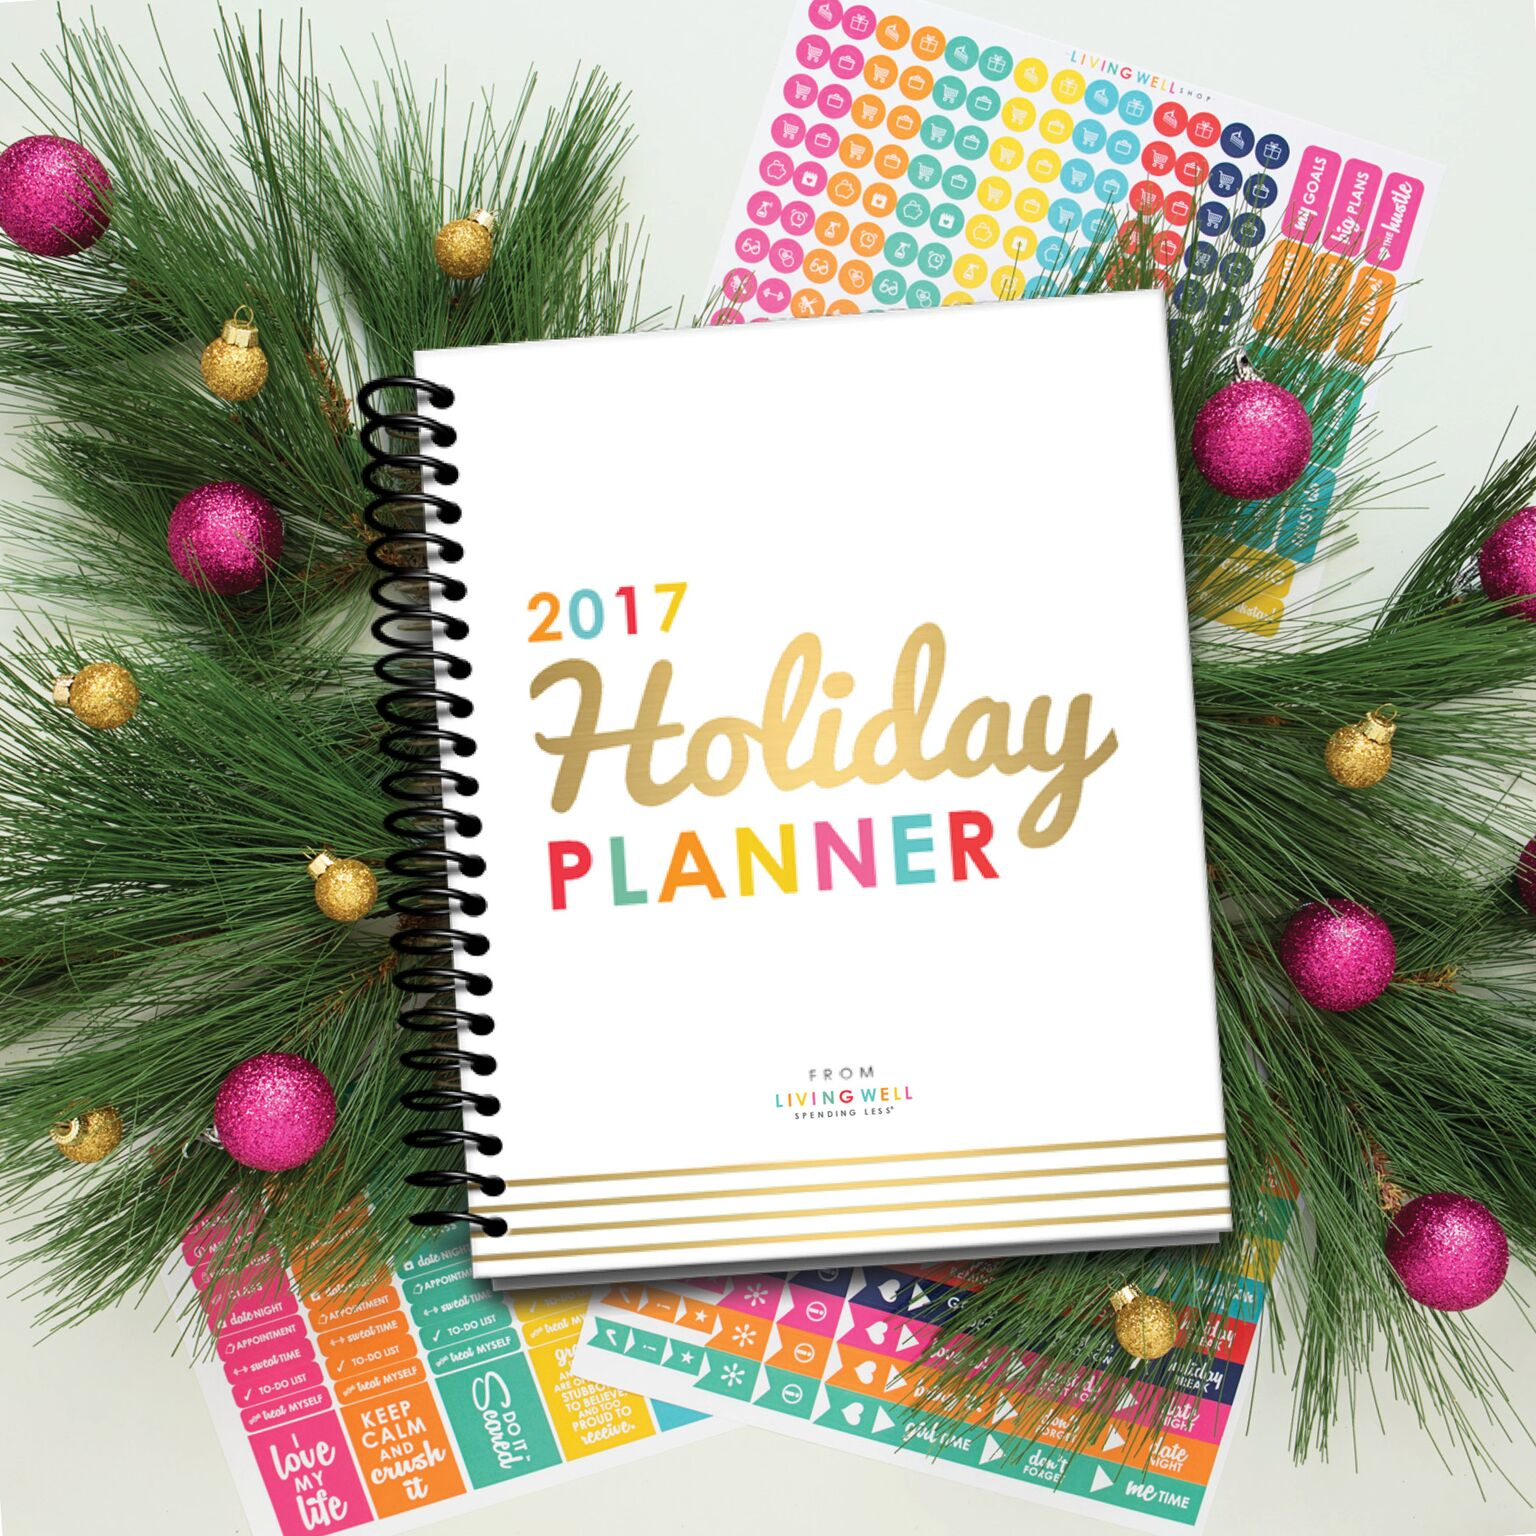 Use this colorful 2017 Holiday Planner to organize your holidays!